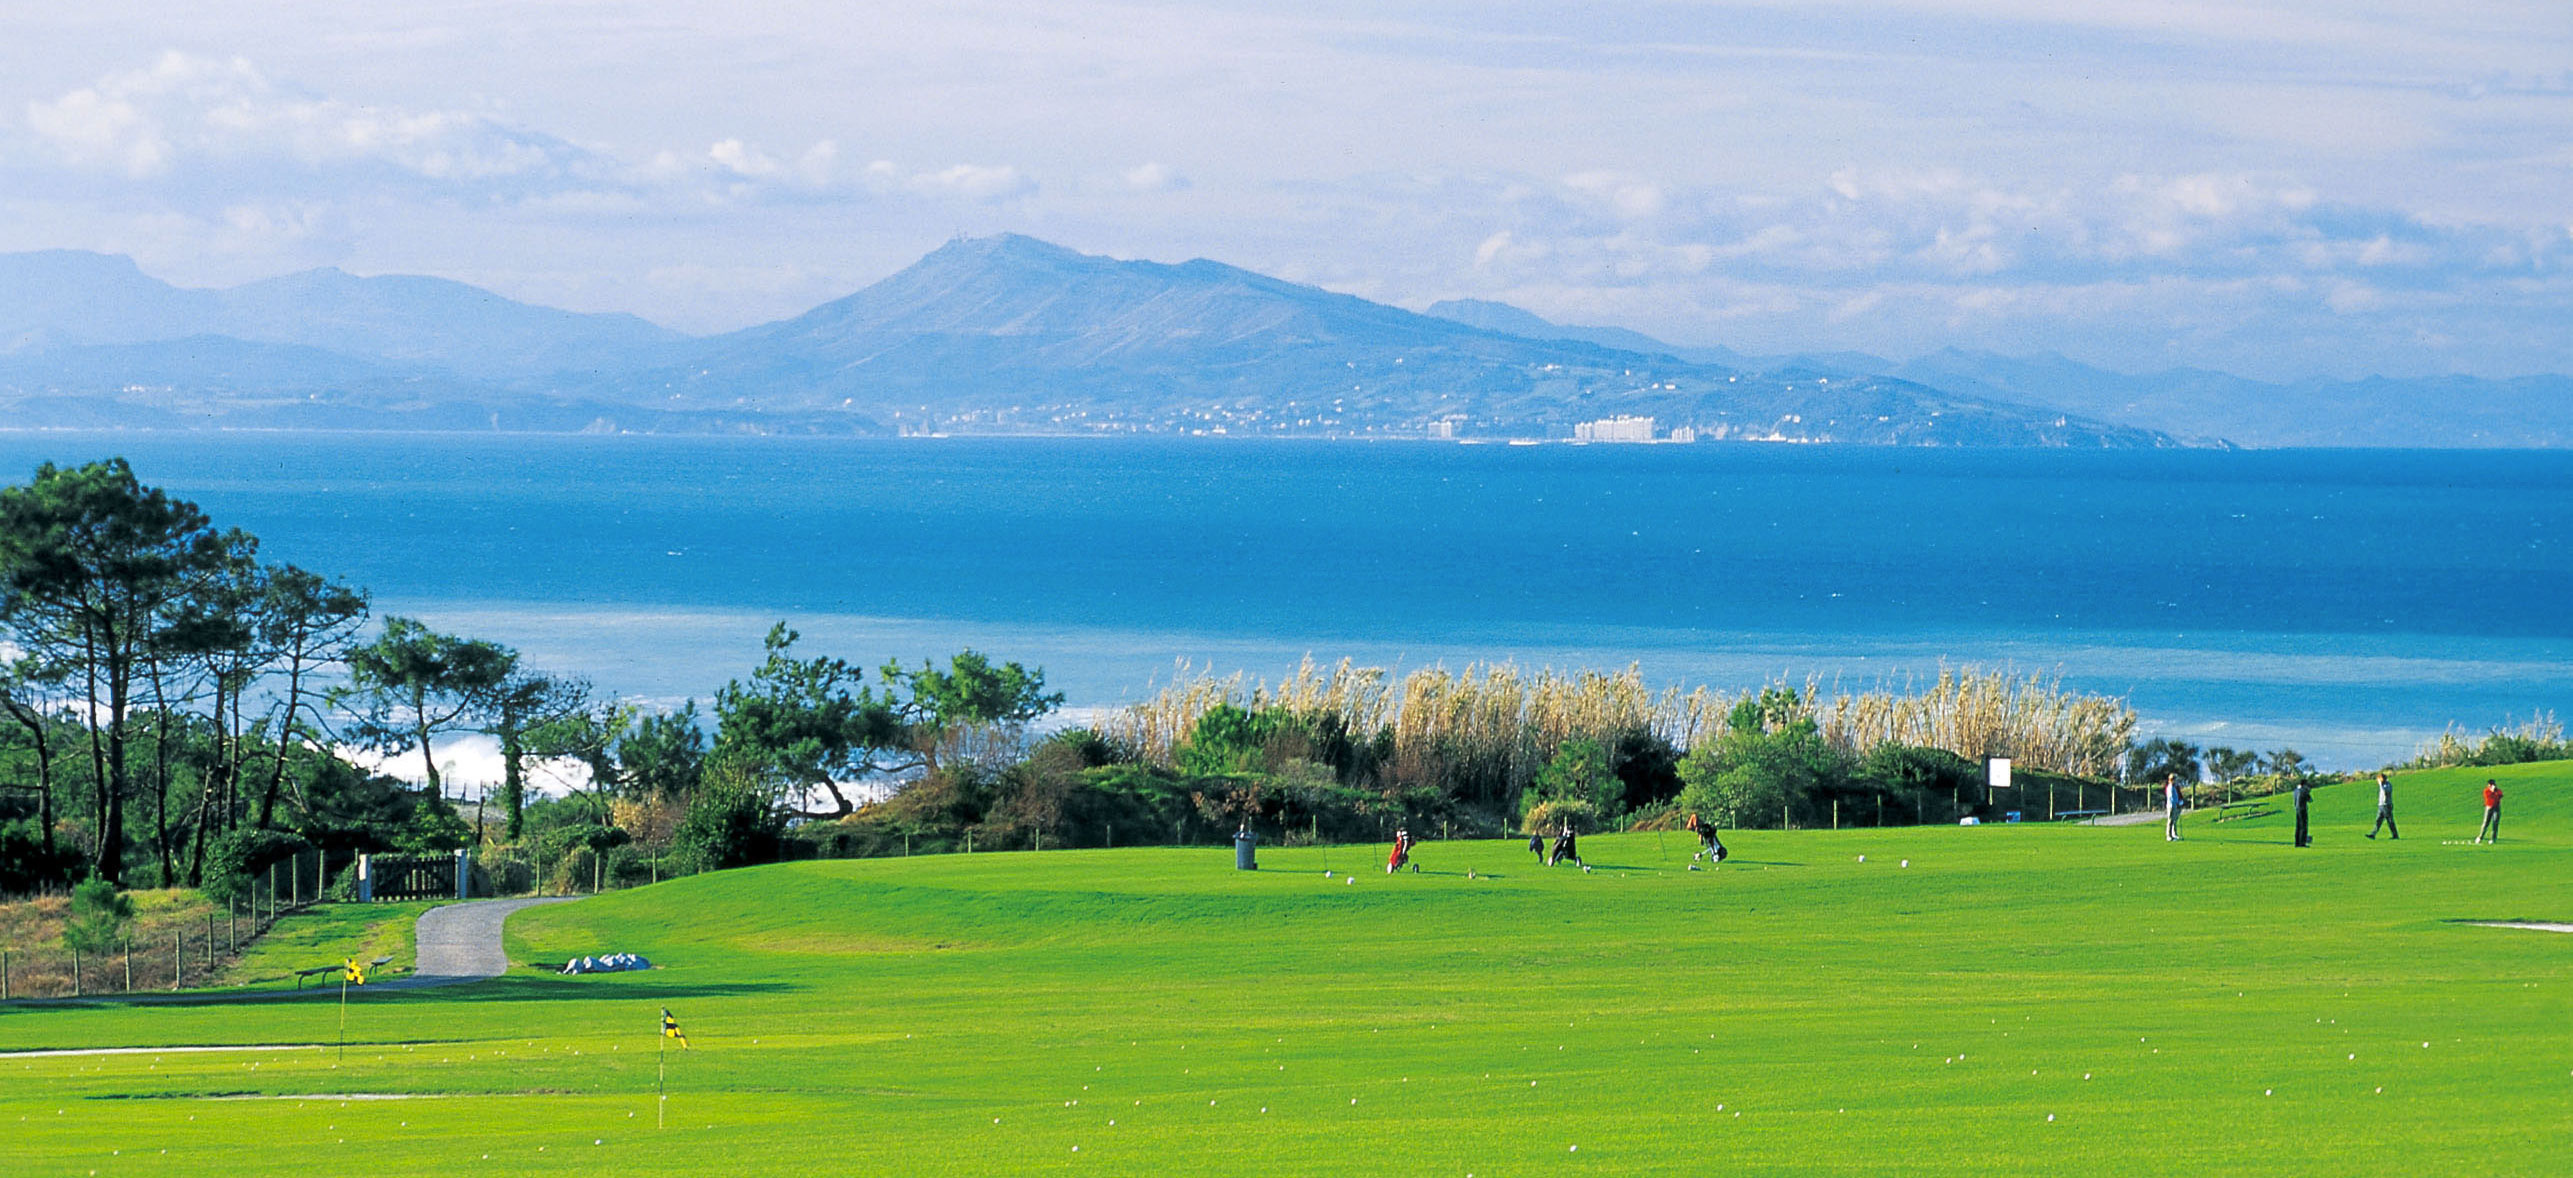 video aérienne du golf d'ilbarritz